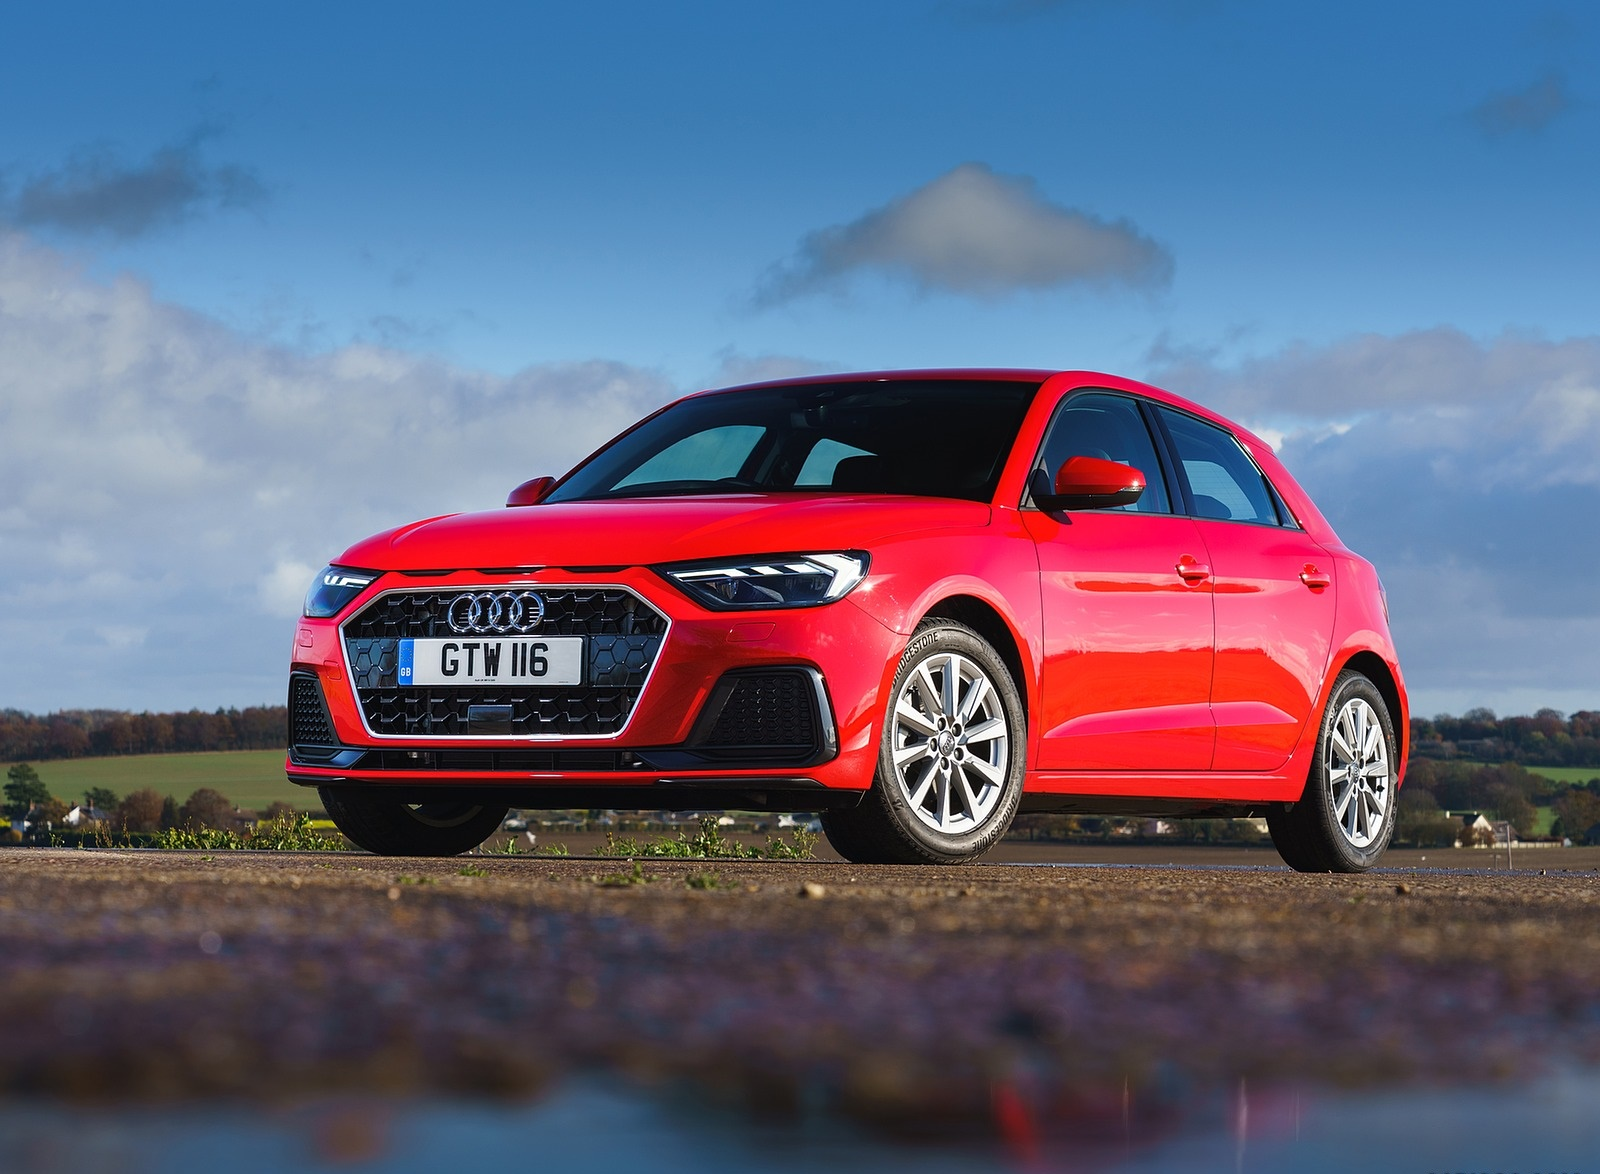 2019 Audi A1 Sportback 30 TFSI (UK-Spec) Front Three-Quarter Wallpapers (14)